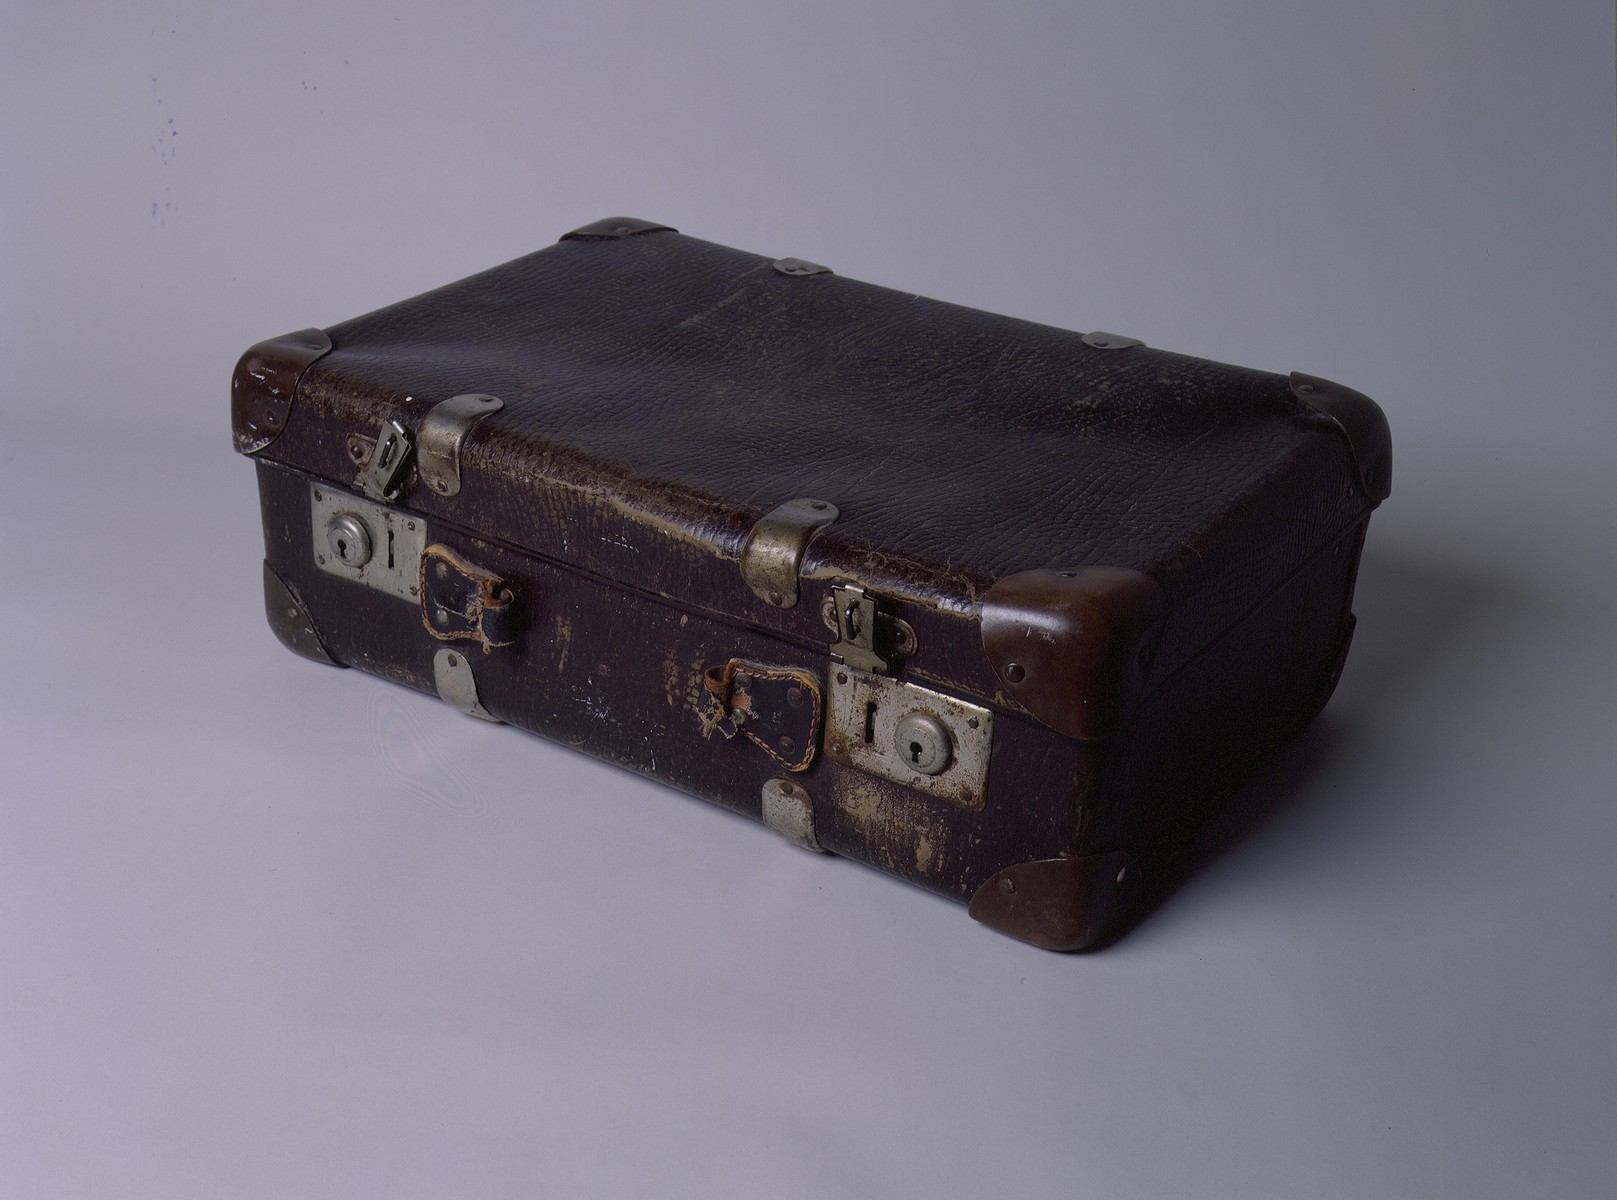 Small brown leather suitcase with metal clasps and corner reinforcements that was carried by the Leikachs, a family of Jewish survivors, from Poland to Italy.